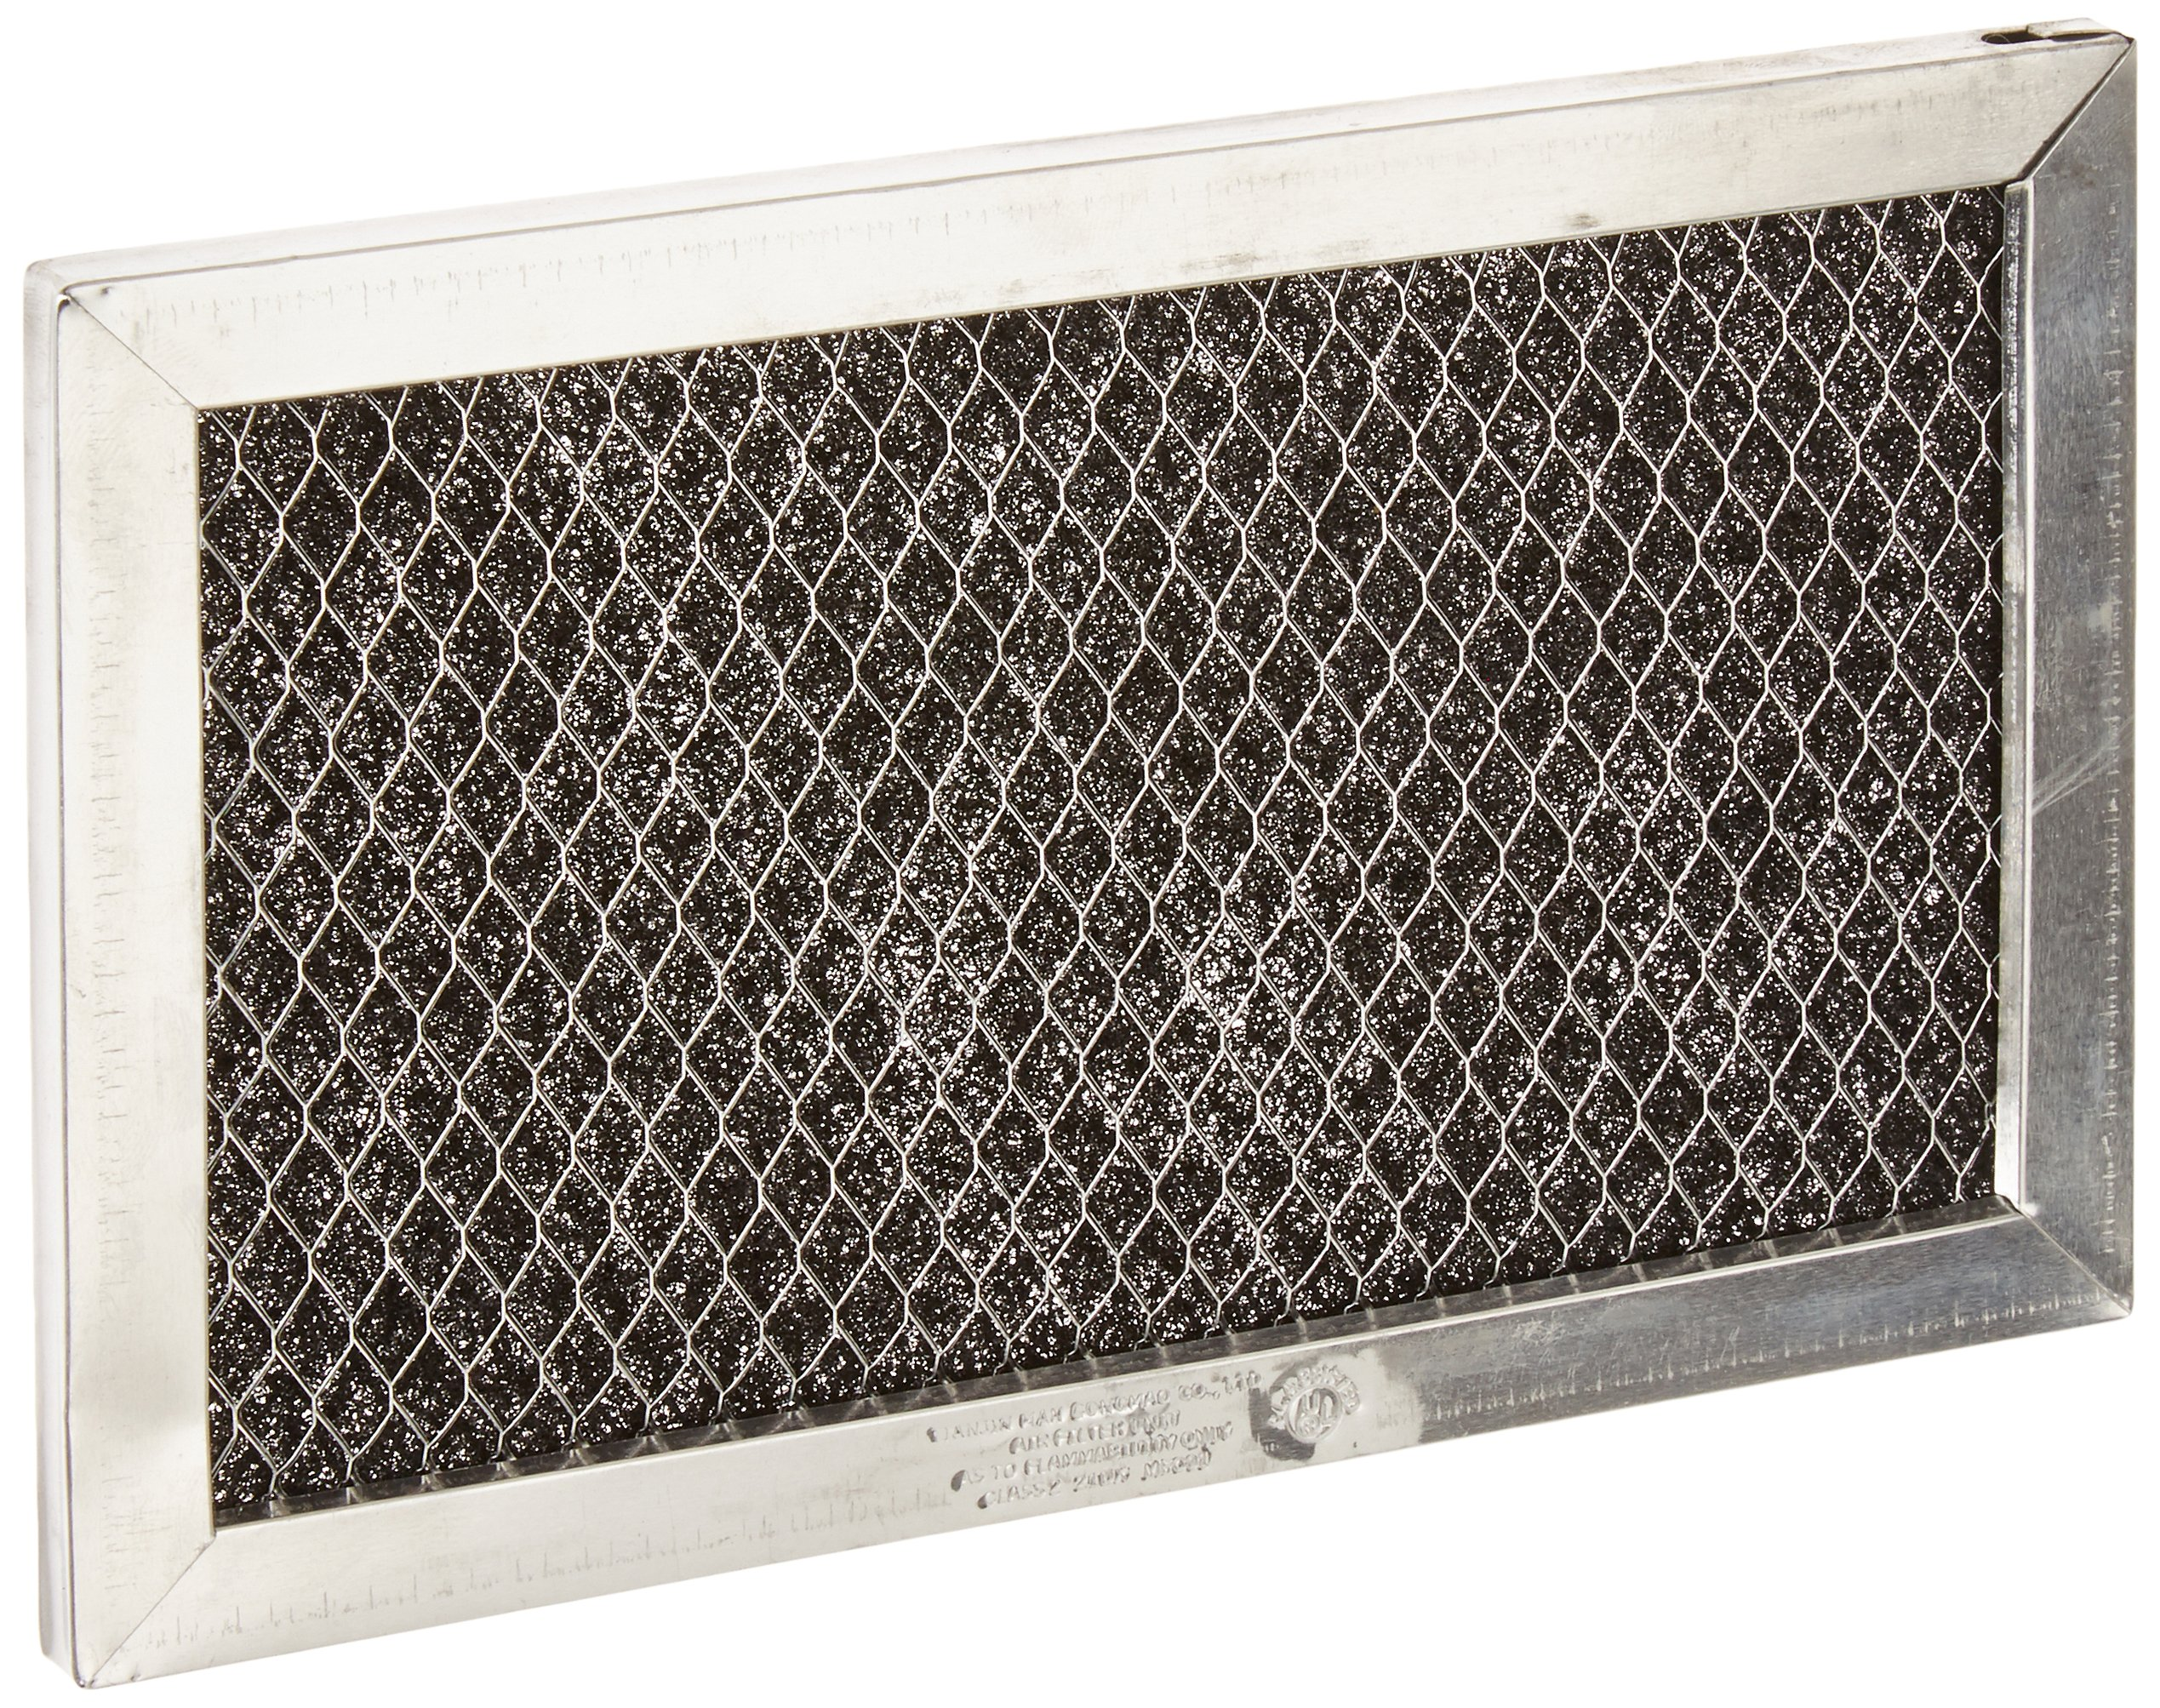 GE WB02X11495 Range/Stove/Oven Charcoal Filter